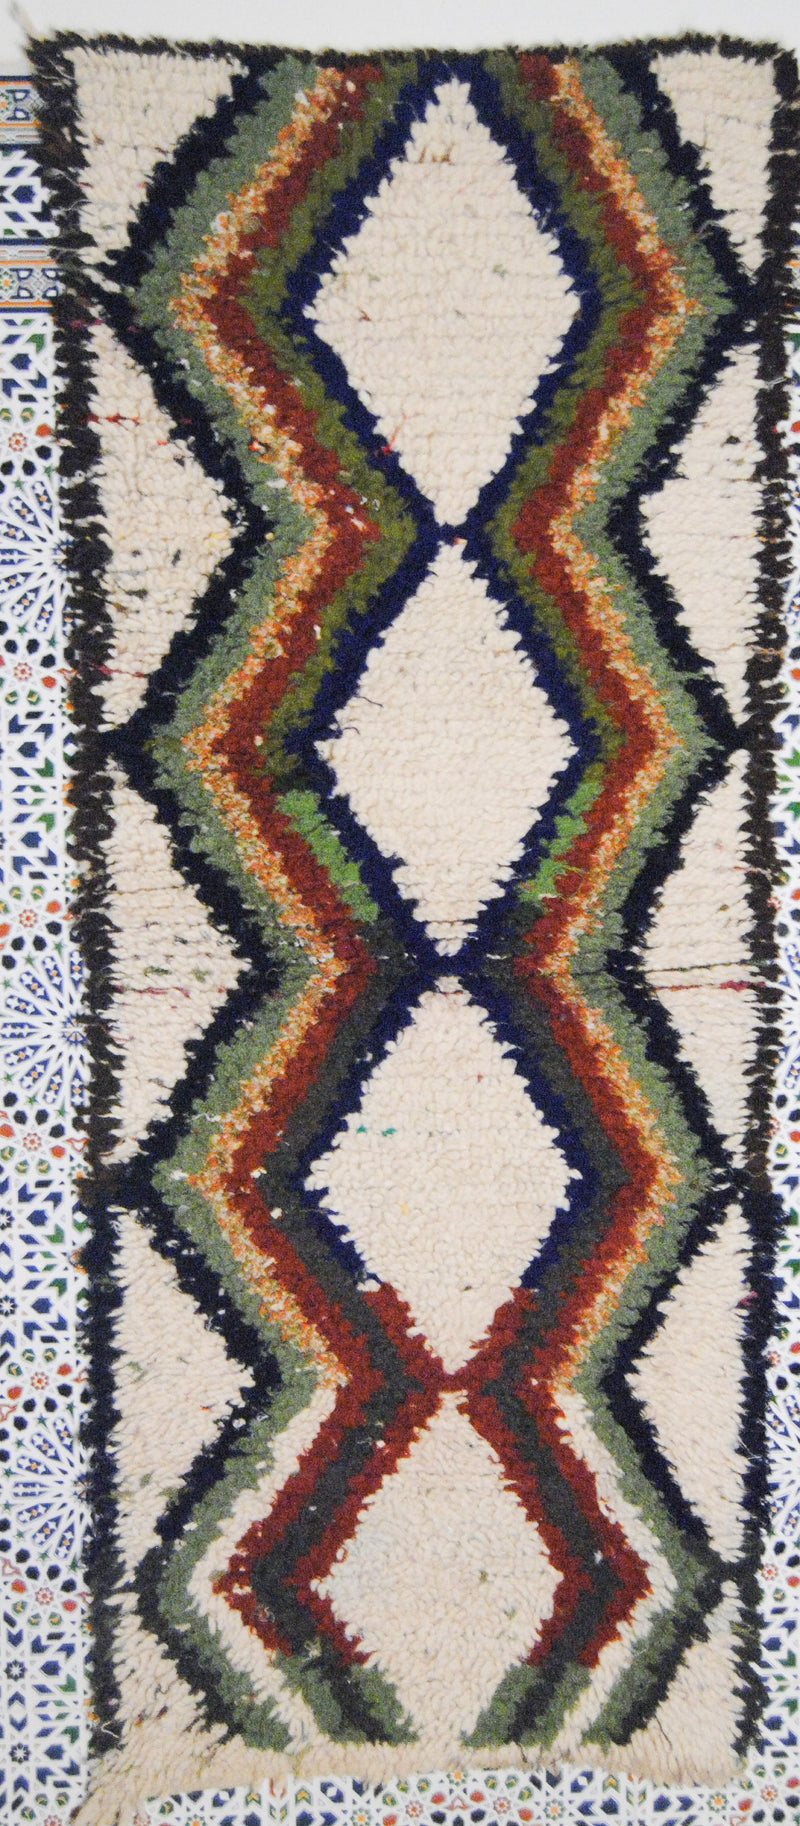 Azilal rug, The Stunning Moroccan Berber carpet.